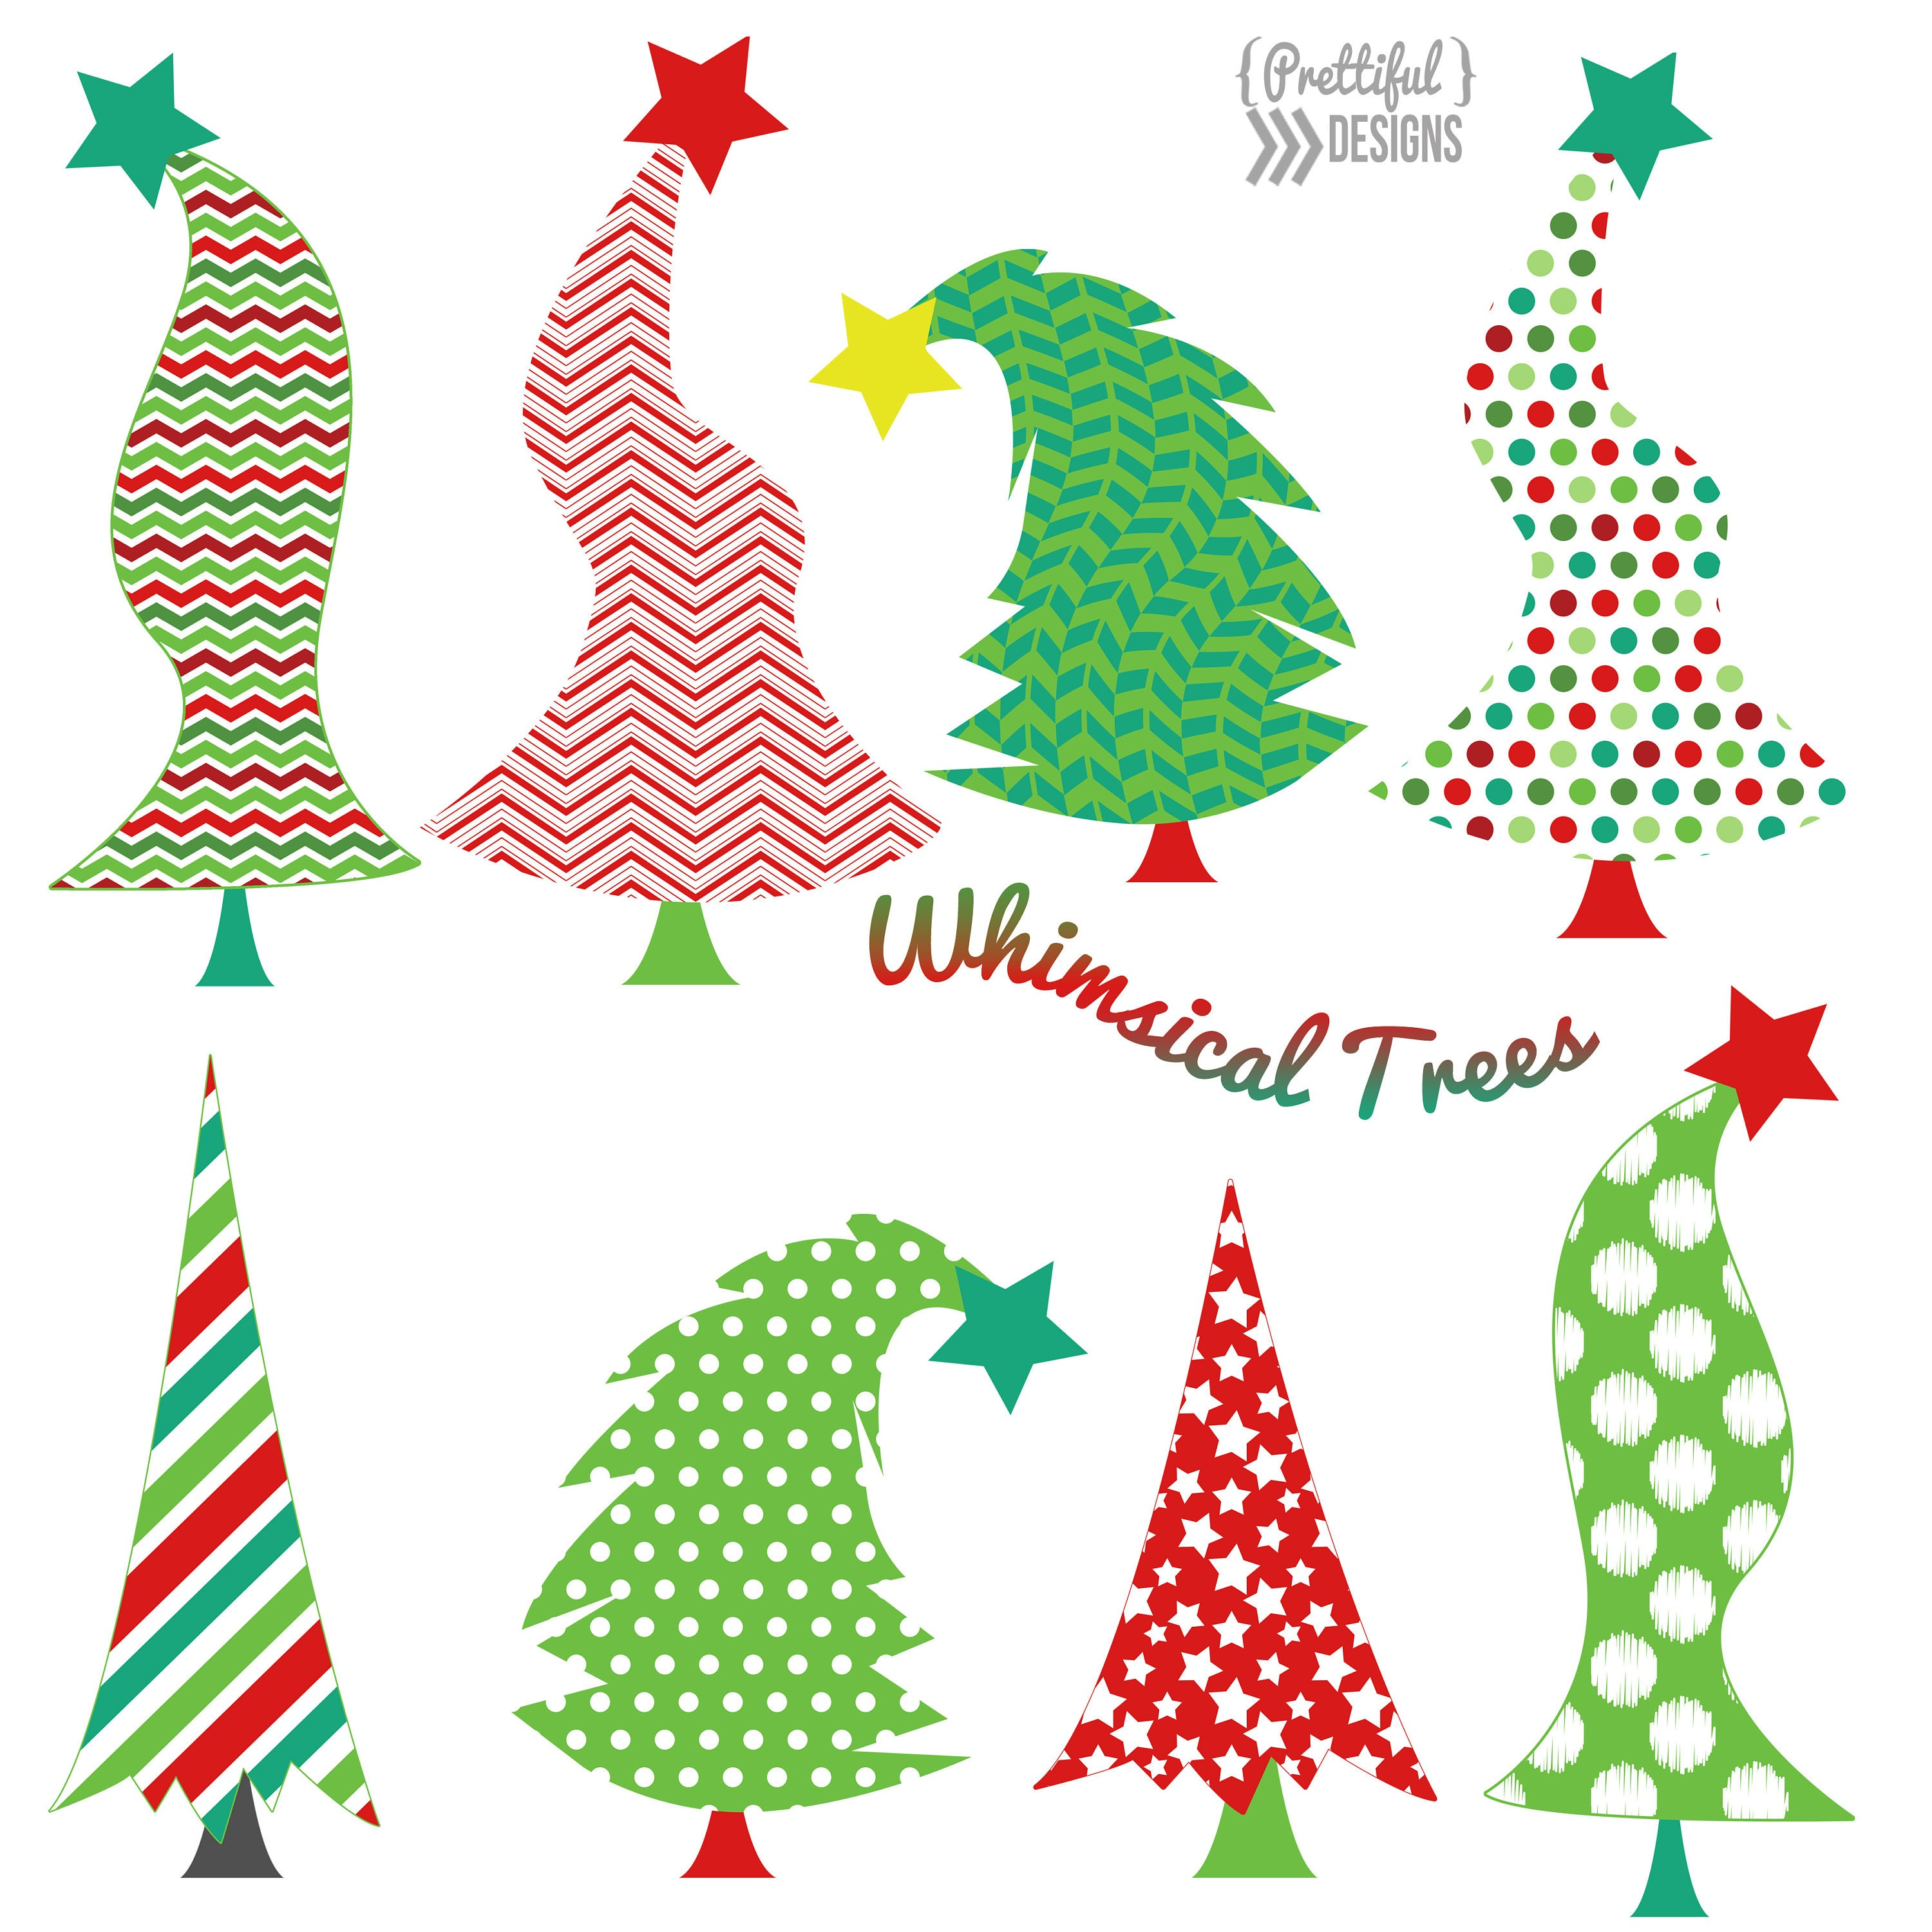 Christmas Tree Cliparts: Christmas Whimsical Trees Clip Art